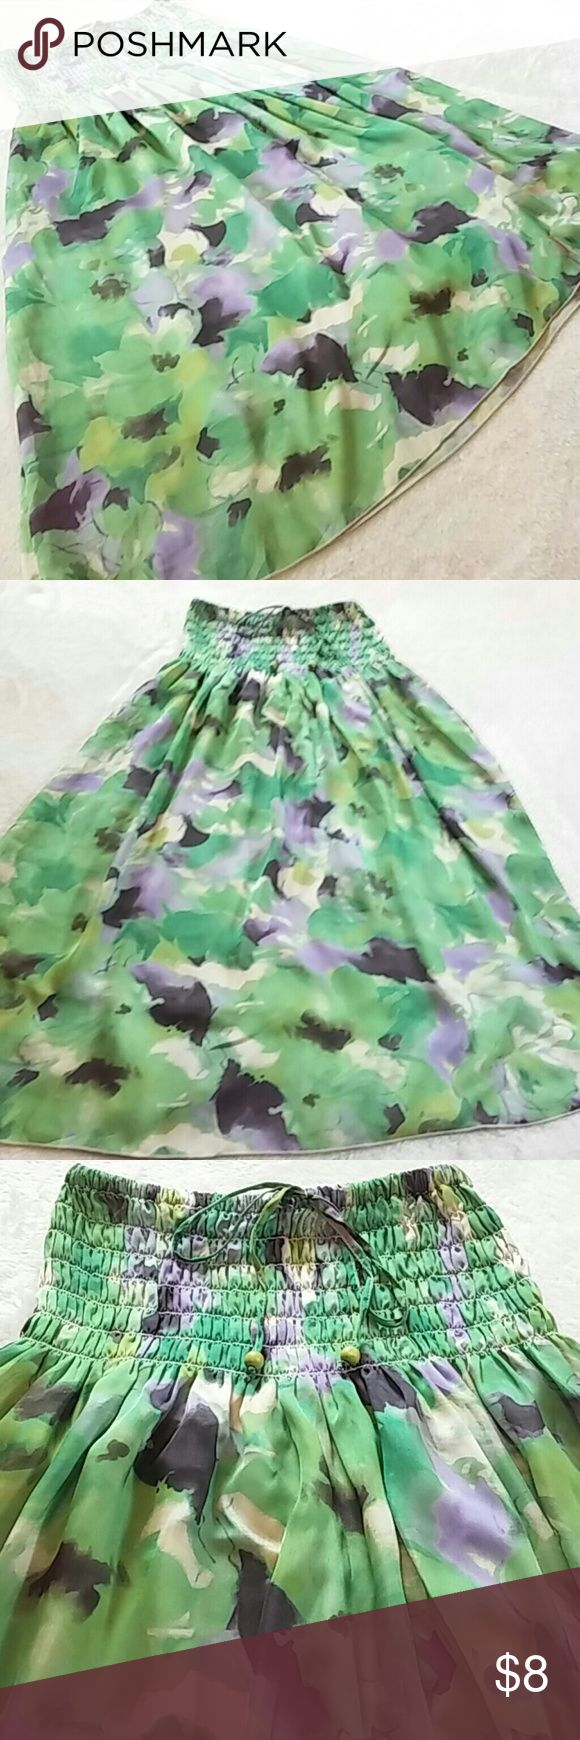 """Lapis Watercolor Tube Dress/Skirt Pretty tube dress or long skirt from Lapis. This features a floral-ish, watercolor design in various shades of green, purple, cream and charcoal. Due to unique print there are variations in material. Smocked top with tie. Flowy fit. Lined. 100% poly. There a couple of very tiny runs on the skirt which aren't noticeable, otherwise in EUC. 12"""" top unstretched. About 33"""" long. Sized OS on tag. Lapis Skirts A-Line or Full"""